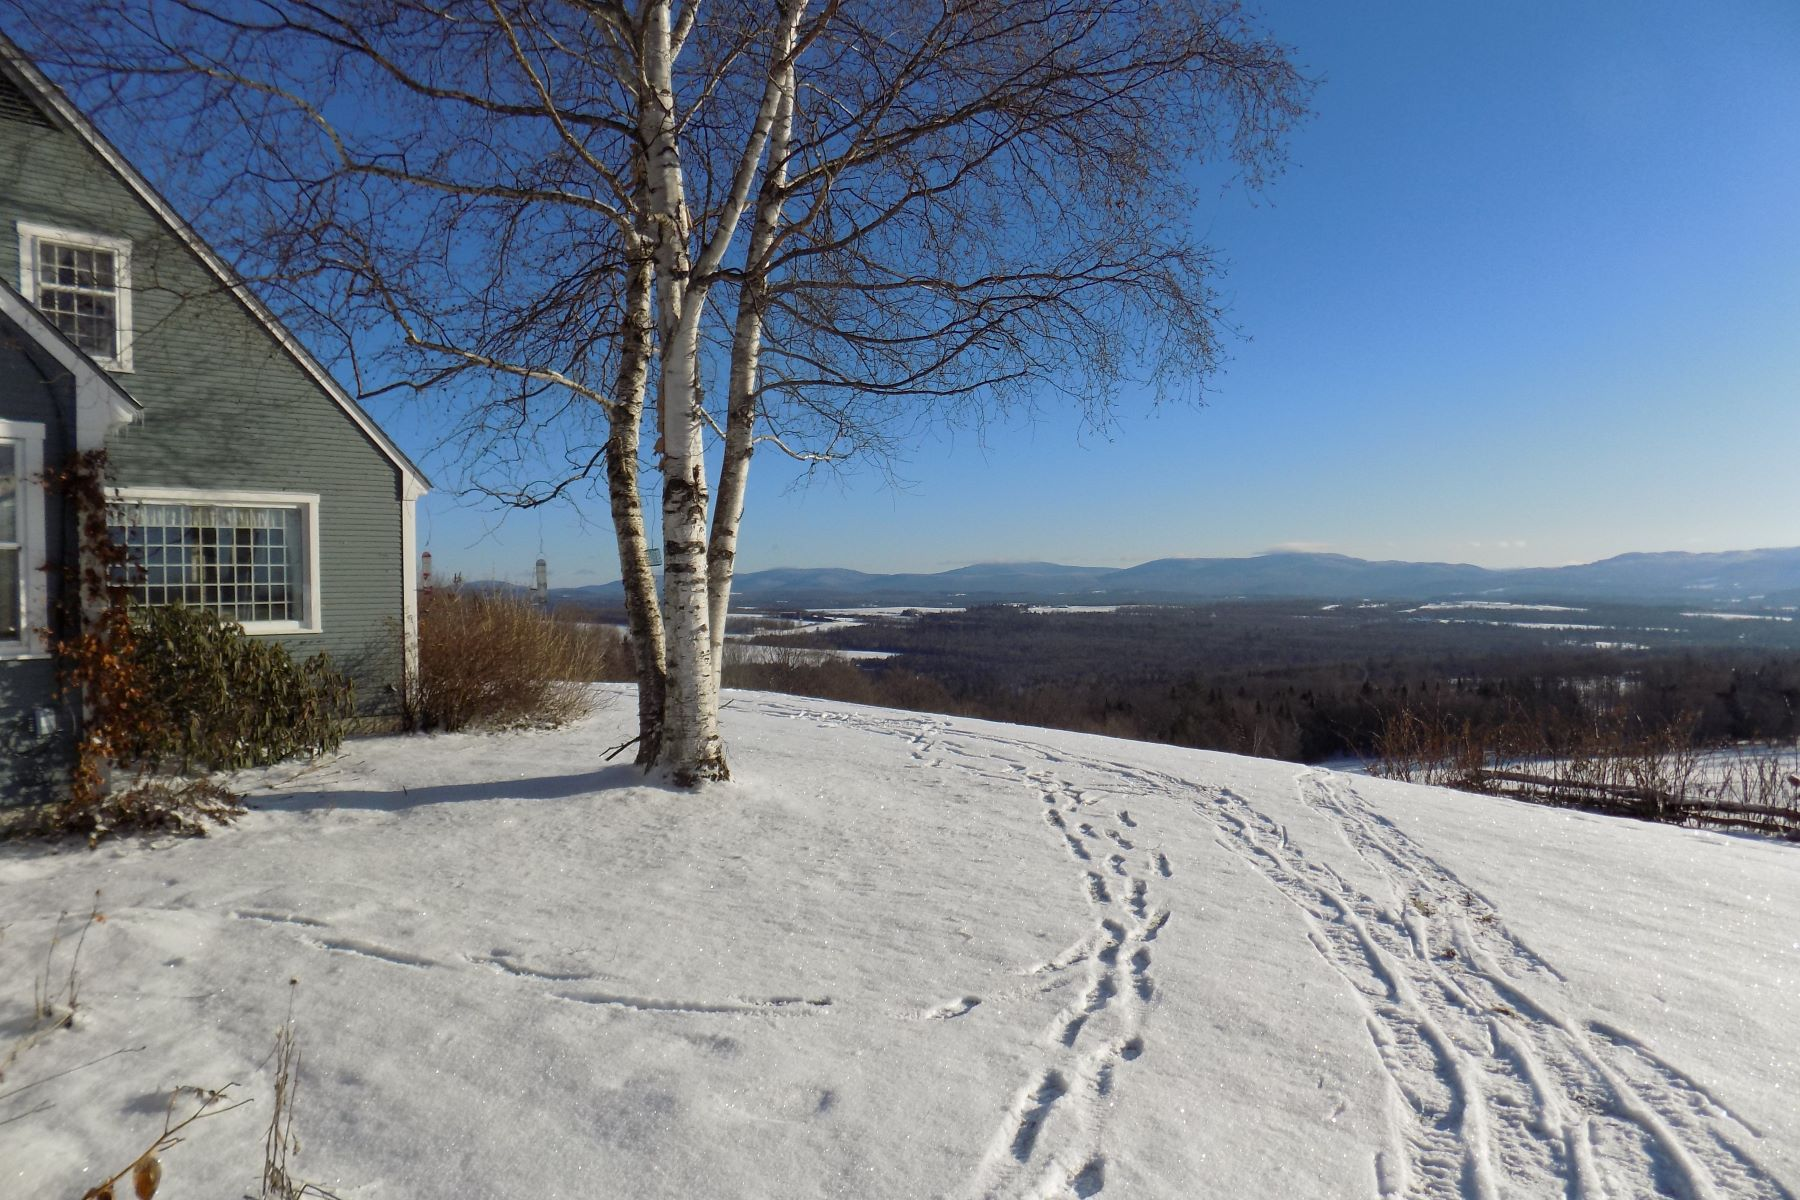 Single Family Home for Sale at 1498 Wheelock Road, Sutton 1498 Wheelock Rd Sutton, Vermont 05867 United States